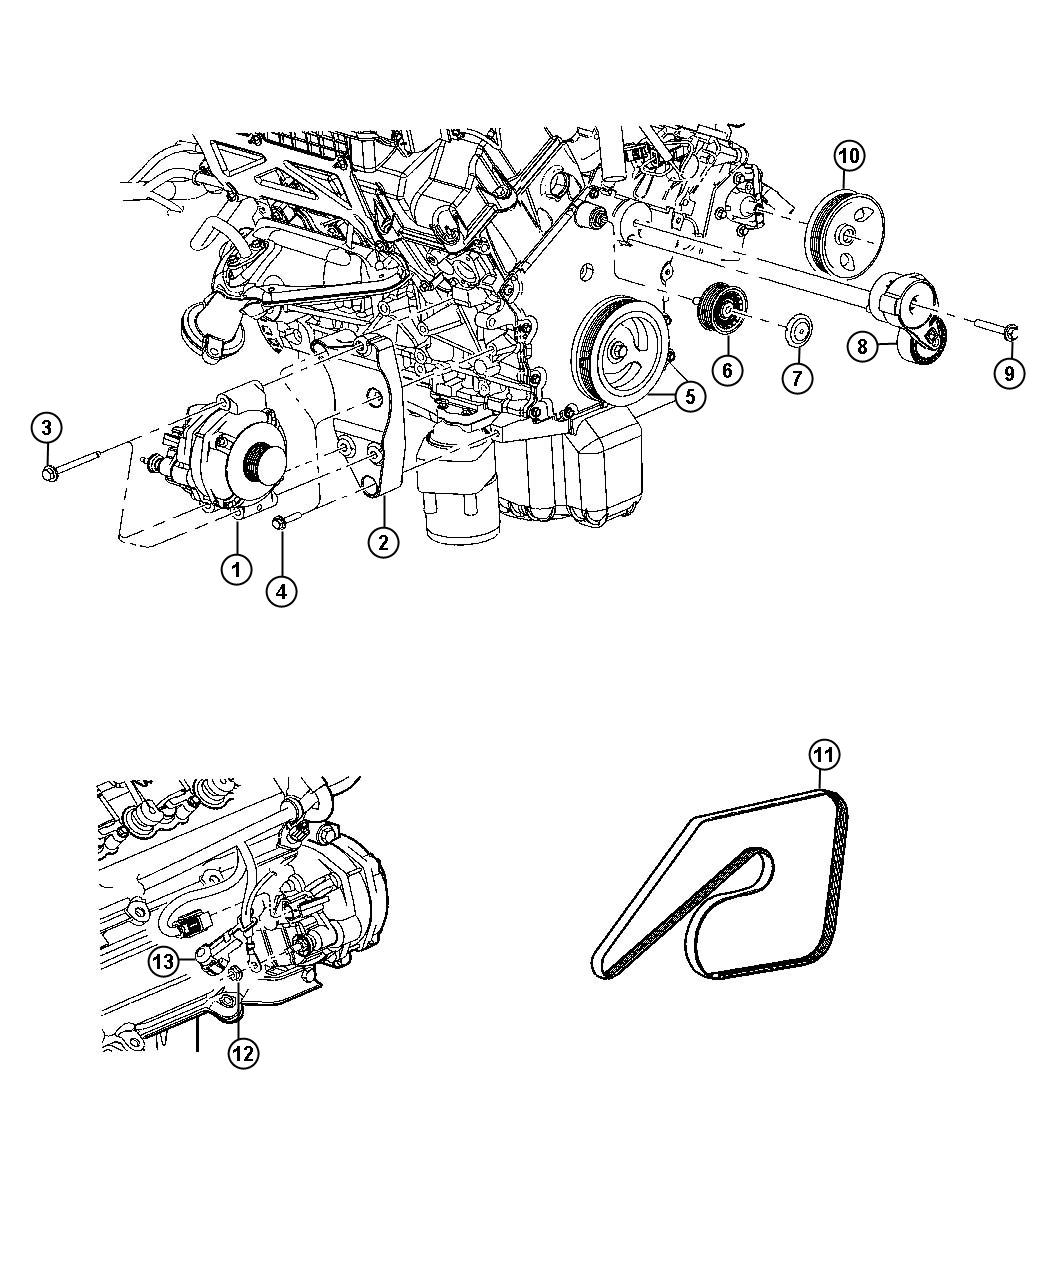 Picture of chrysler motor and engine parts